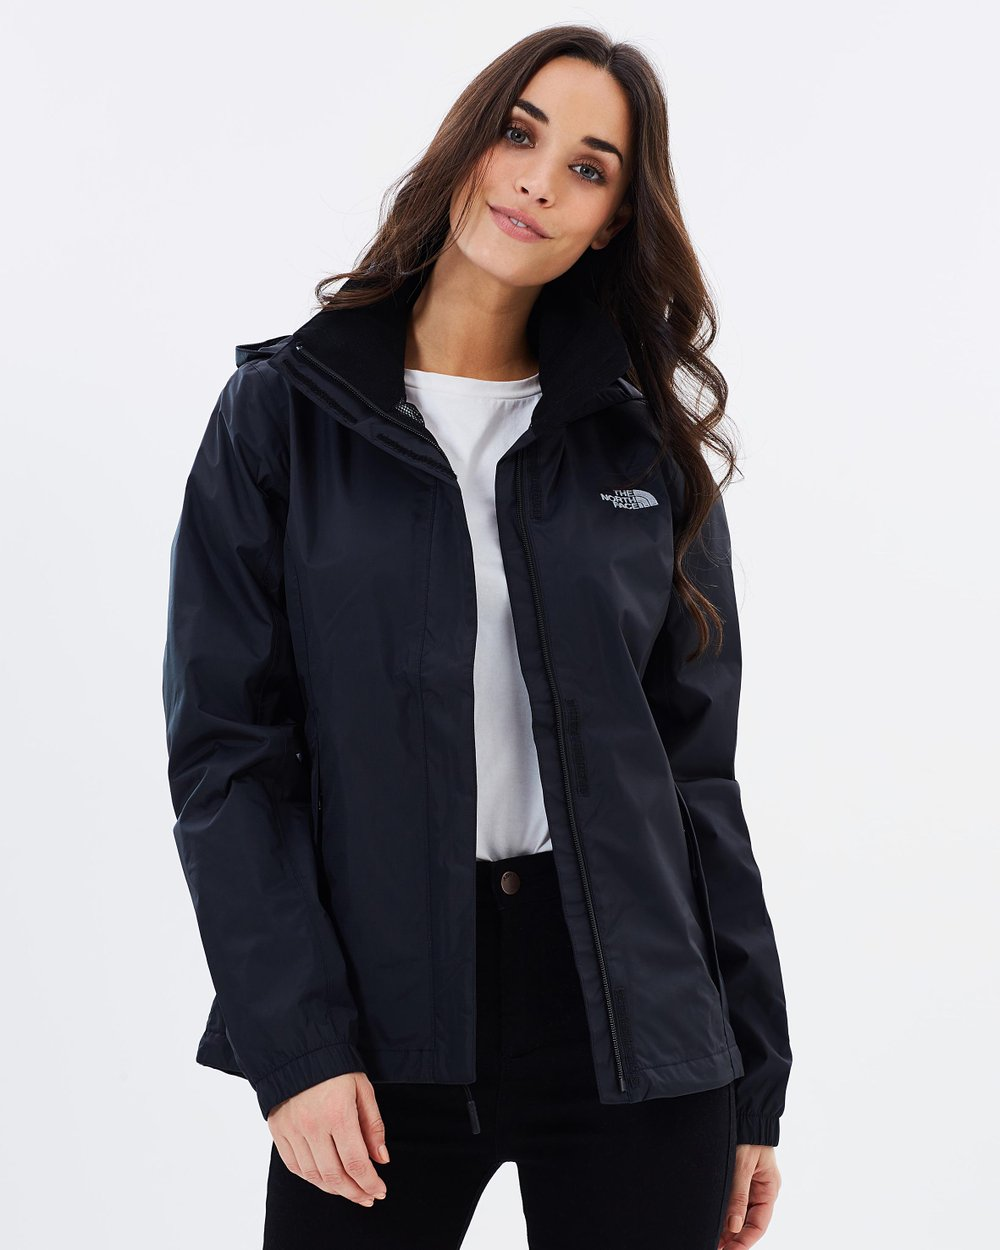 8e07c1c91 Women's Resolve 2 Jacket